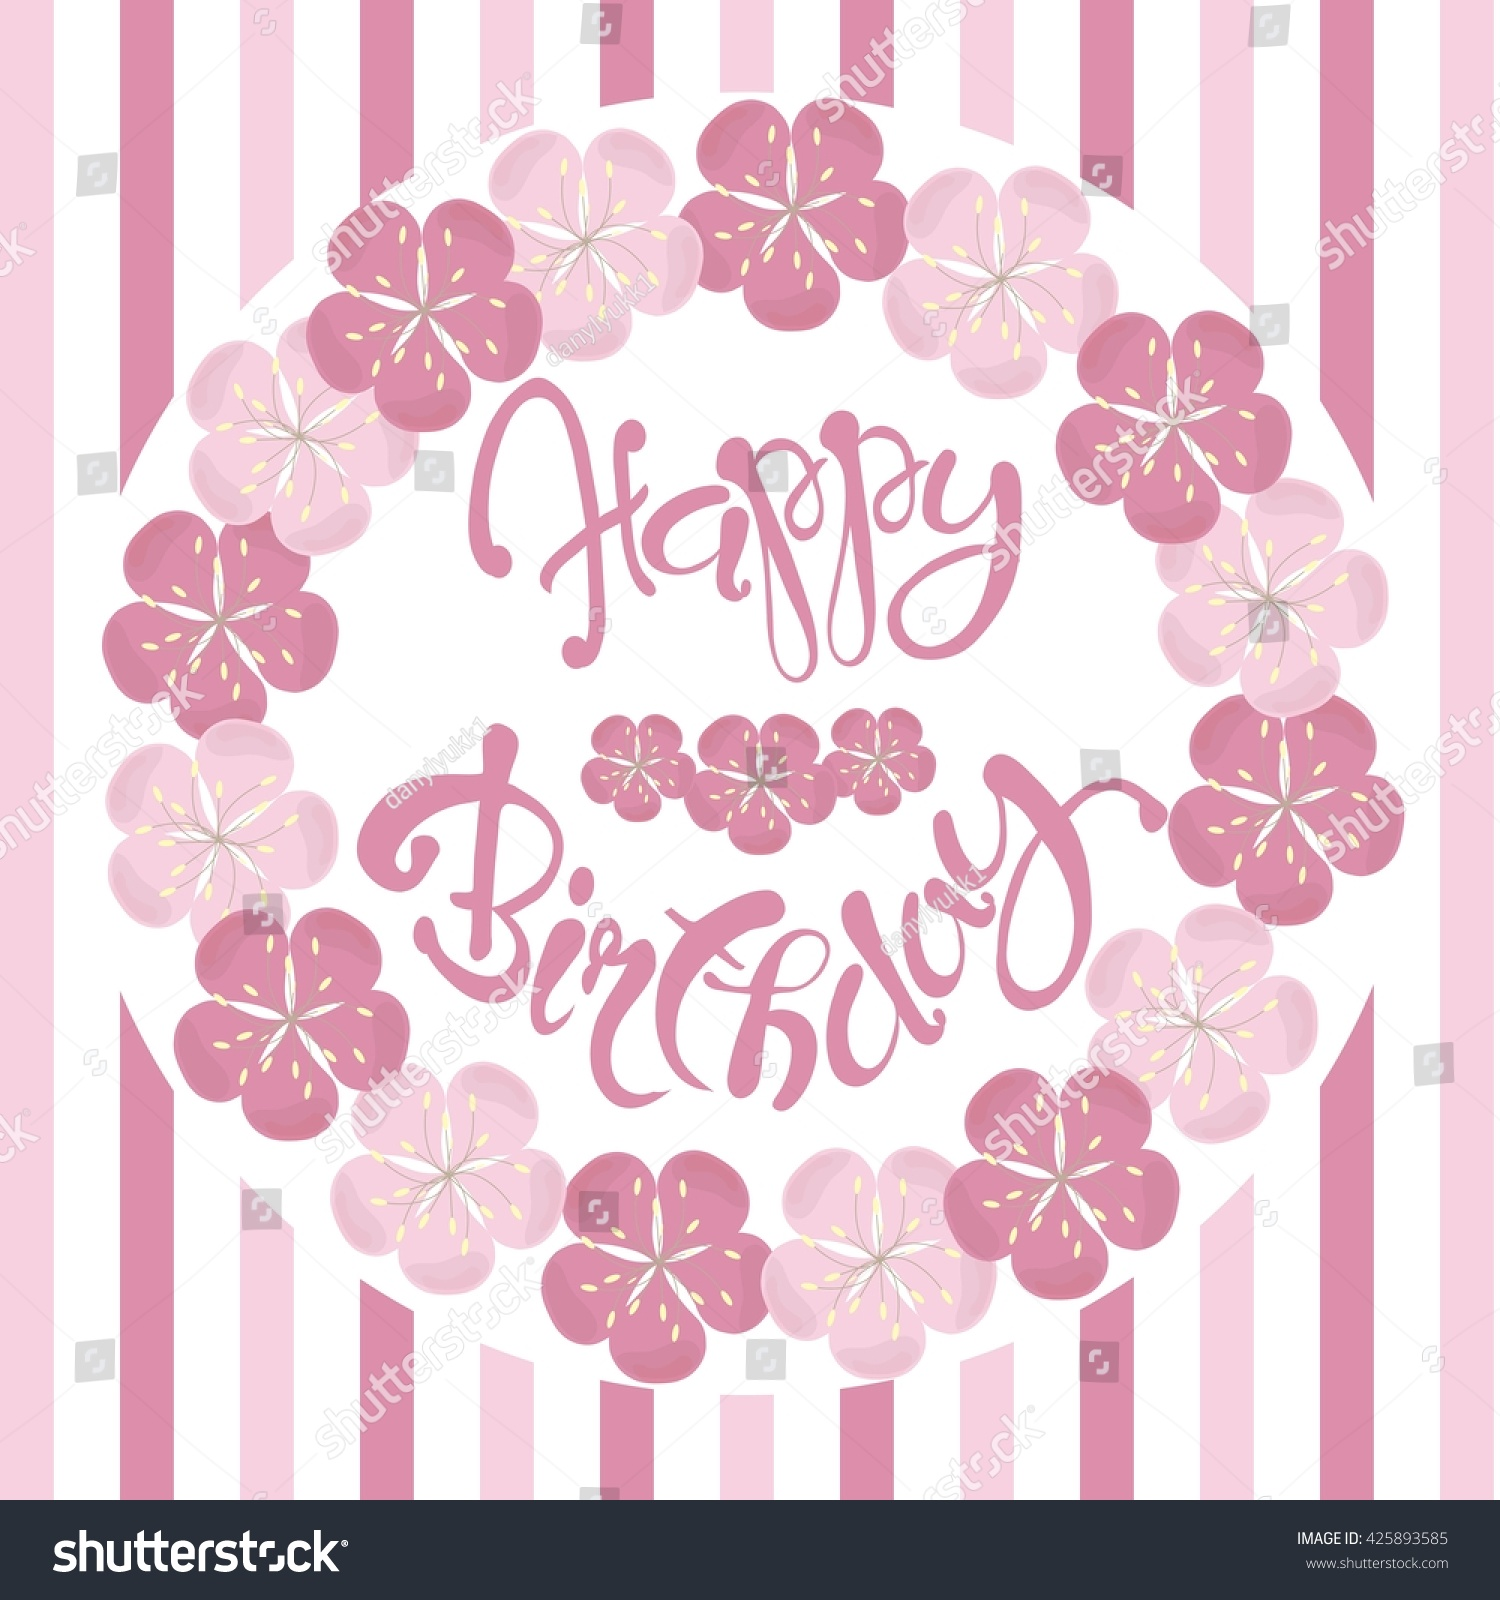 Beautiful Vintage Floral Happy Birthday Congratulation Card Hand Draw Pink Flowers Lettering Vector